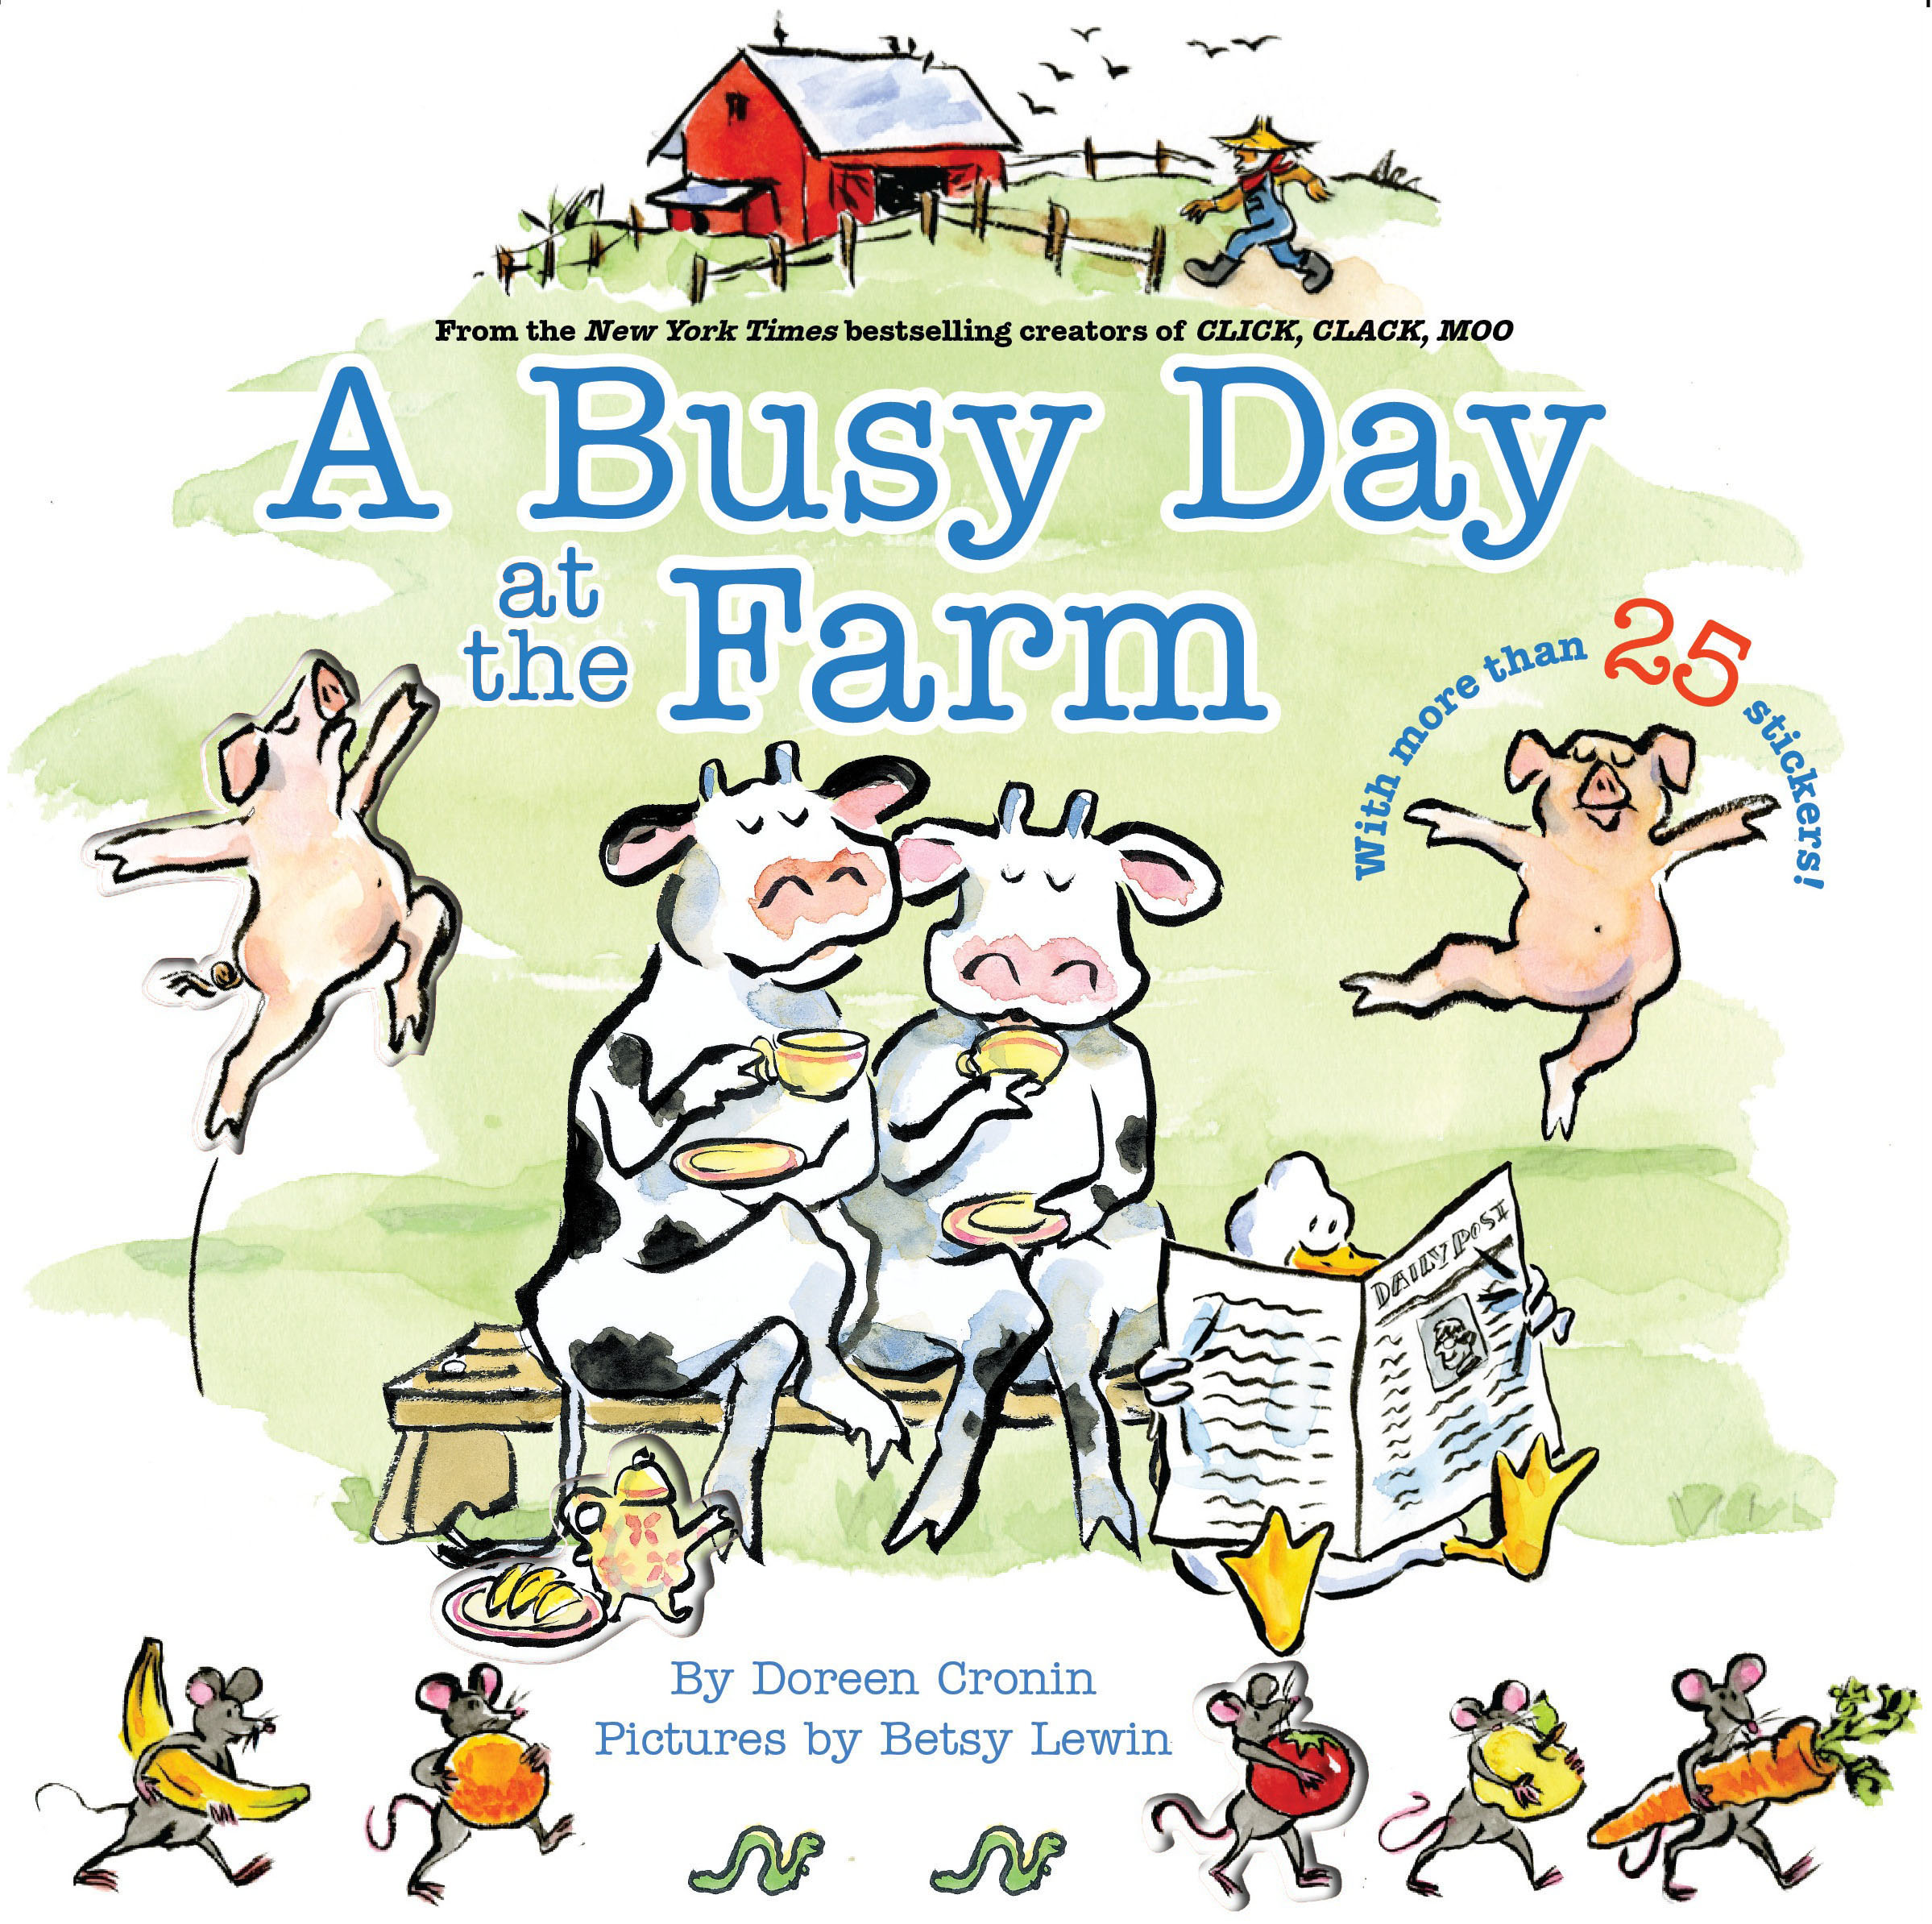 Betsy lewin clipart graphic black and white library A Busy Day at the Farm   Book by Doreen Cronin, Betsy Lewin ... graphic black and white library